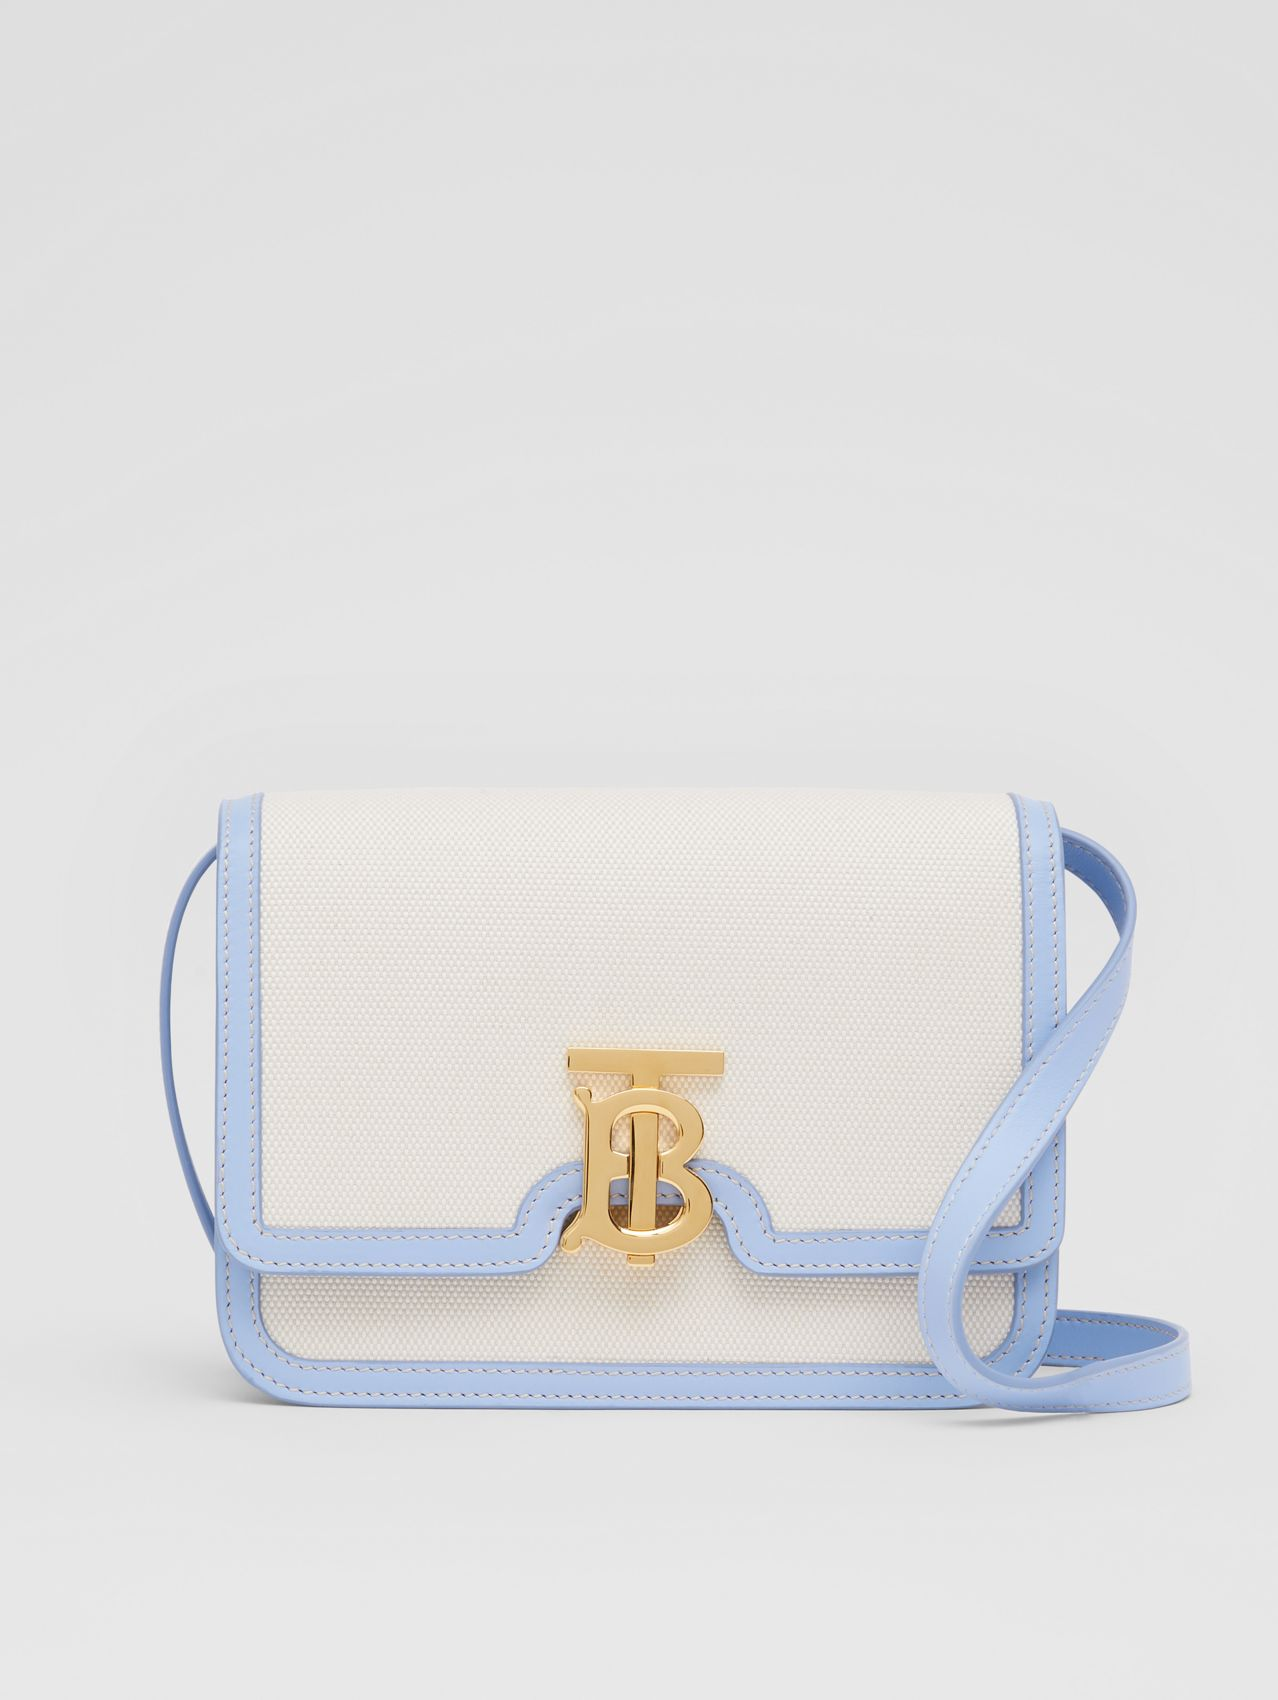 Small Two-tone Canvas and Leather TB Bag (Natural/pale Blue)